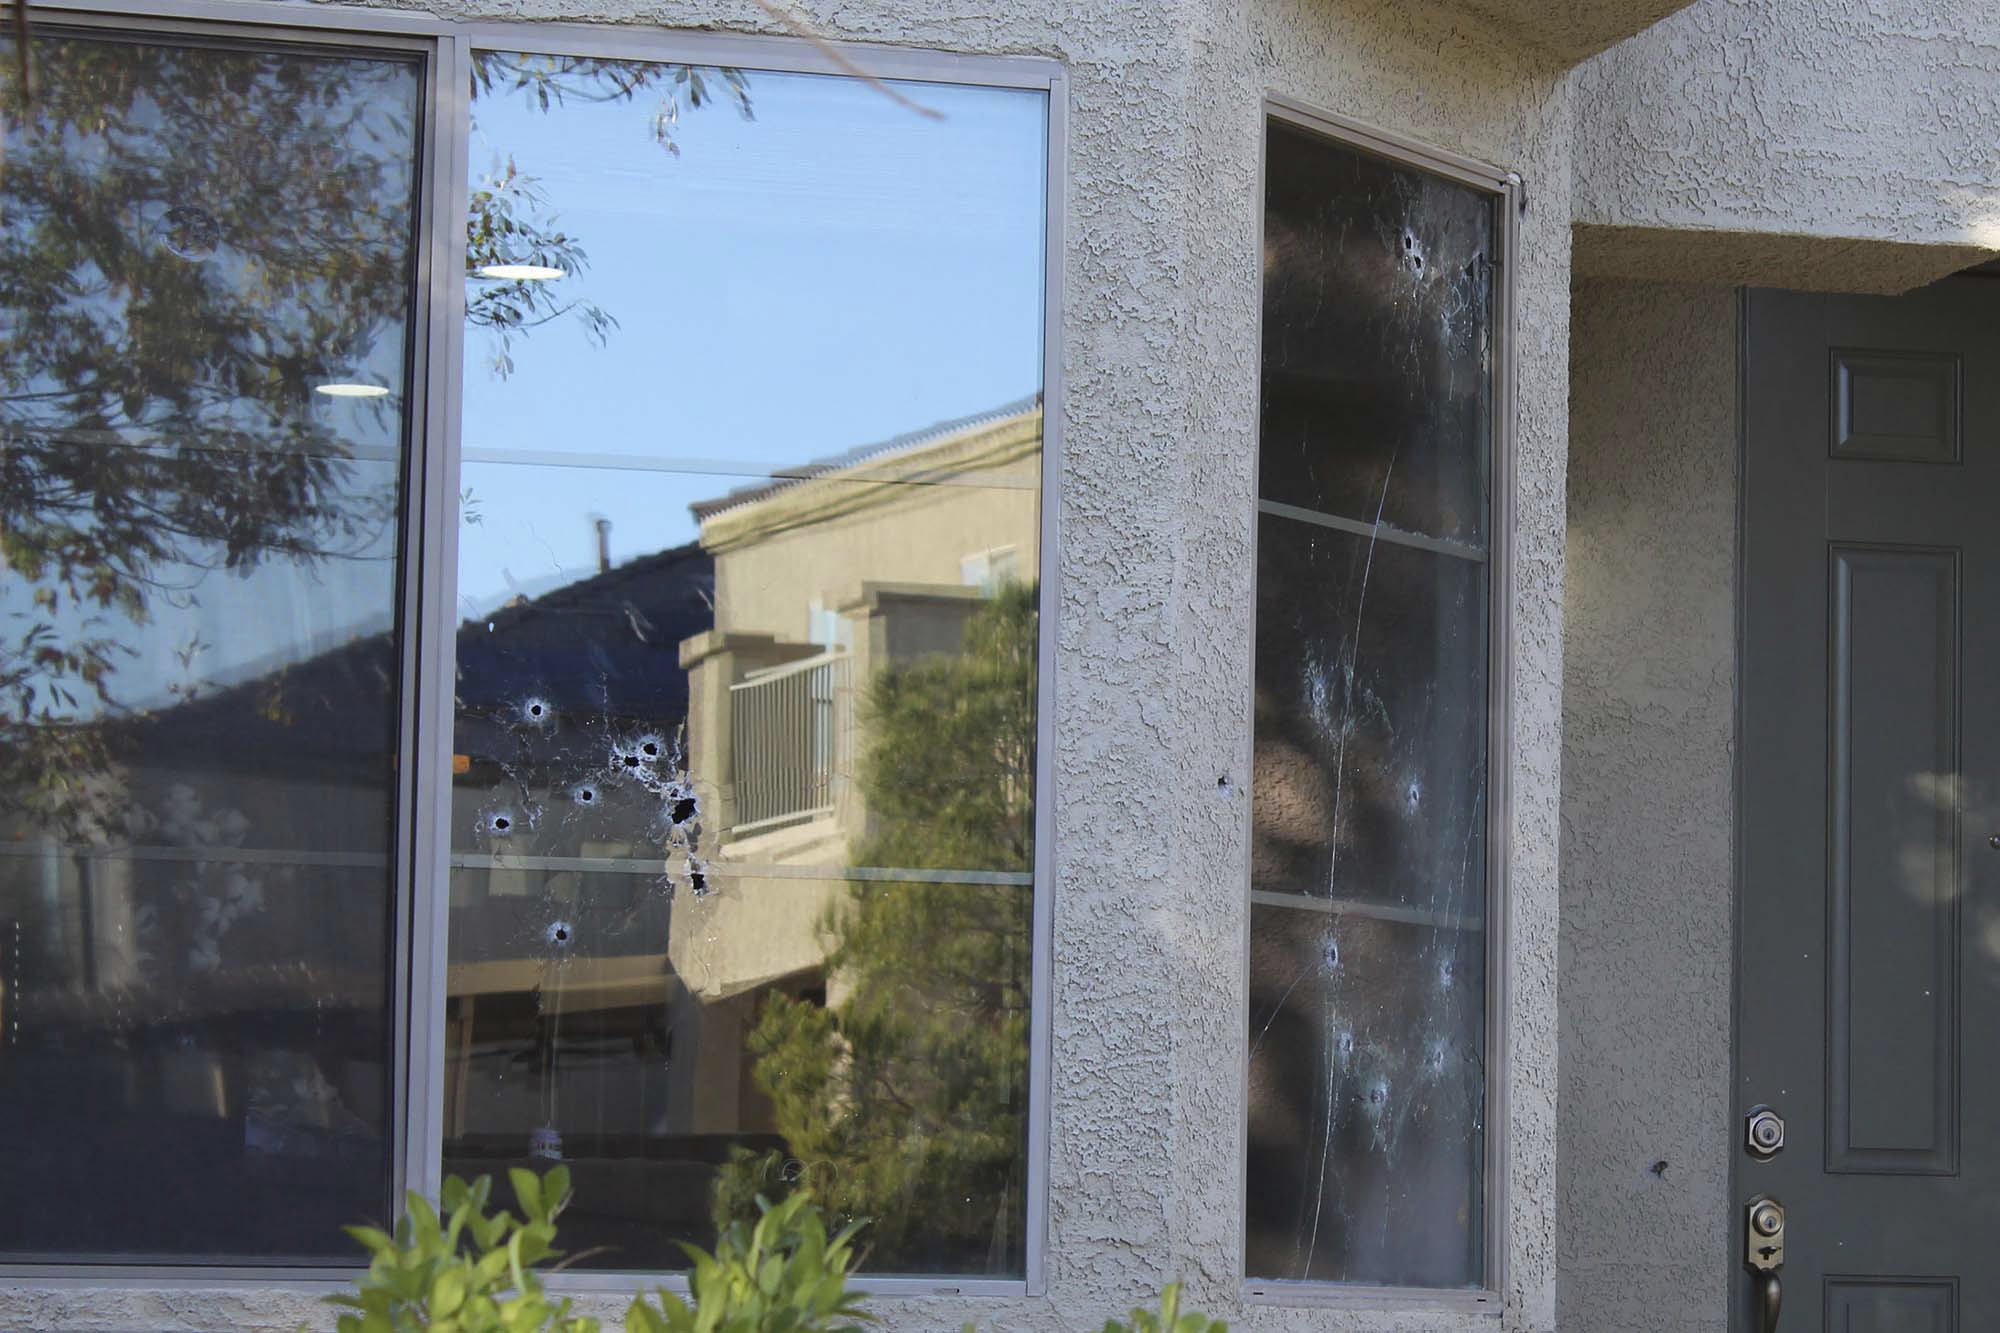 Bullet holes mark the windows of a house that was hit by gunfire Thursday night, killing an 11-year-old girl in North Las Vegas, Friday, Nov. 2, 2018. An armed group intent on gang-related retaliation opened fire on the wrong house in suburban Las Vegas, killing the girl in her kitchen, police said Friday.